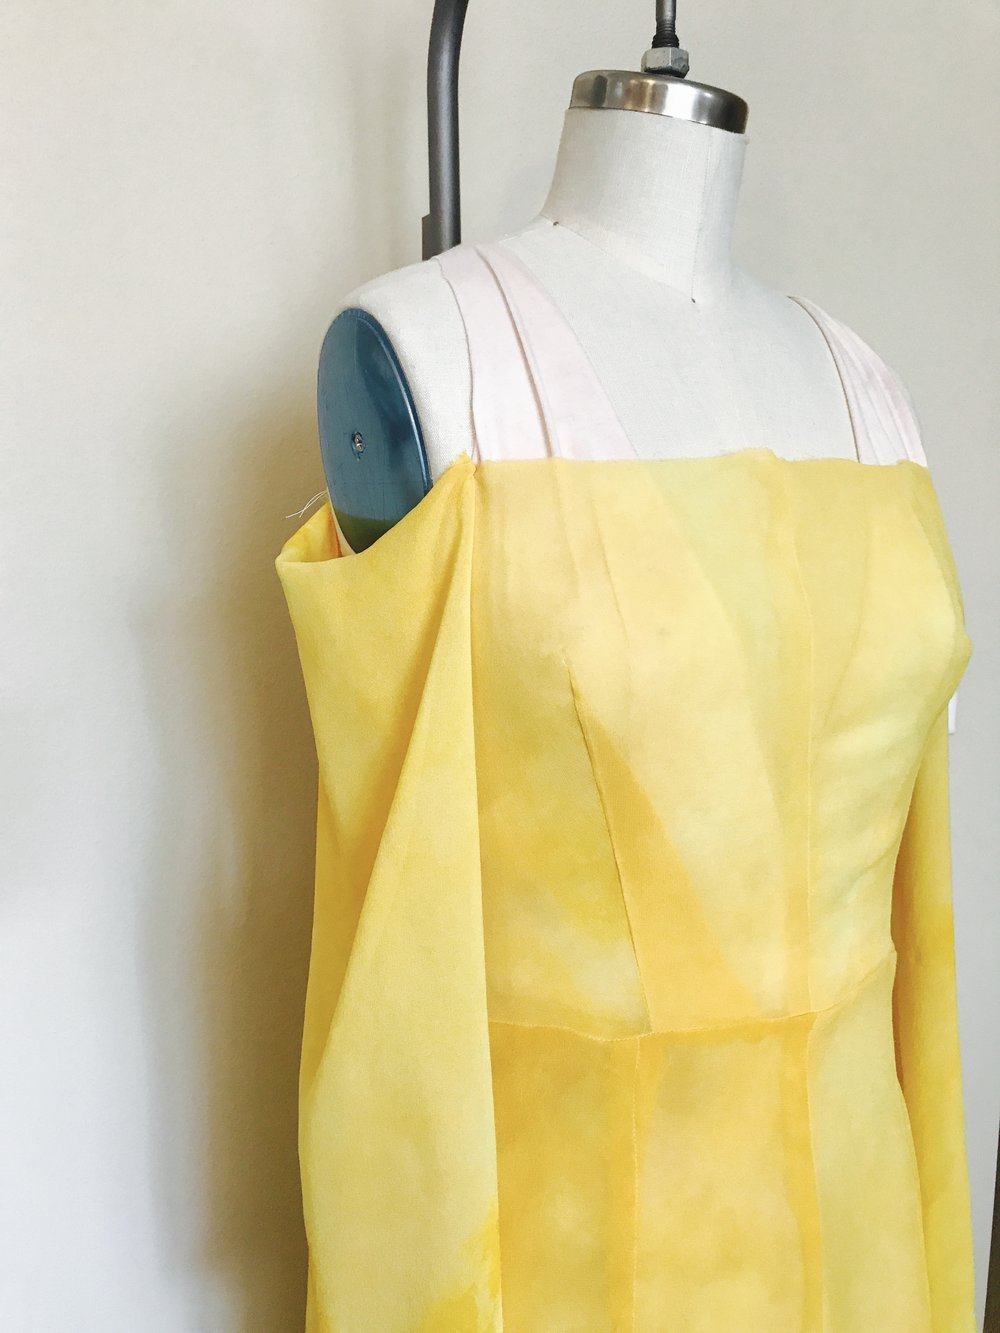 Hand dyed silk chiffon off-the-shoulder dress, yellow color created using yellow onion skins